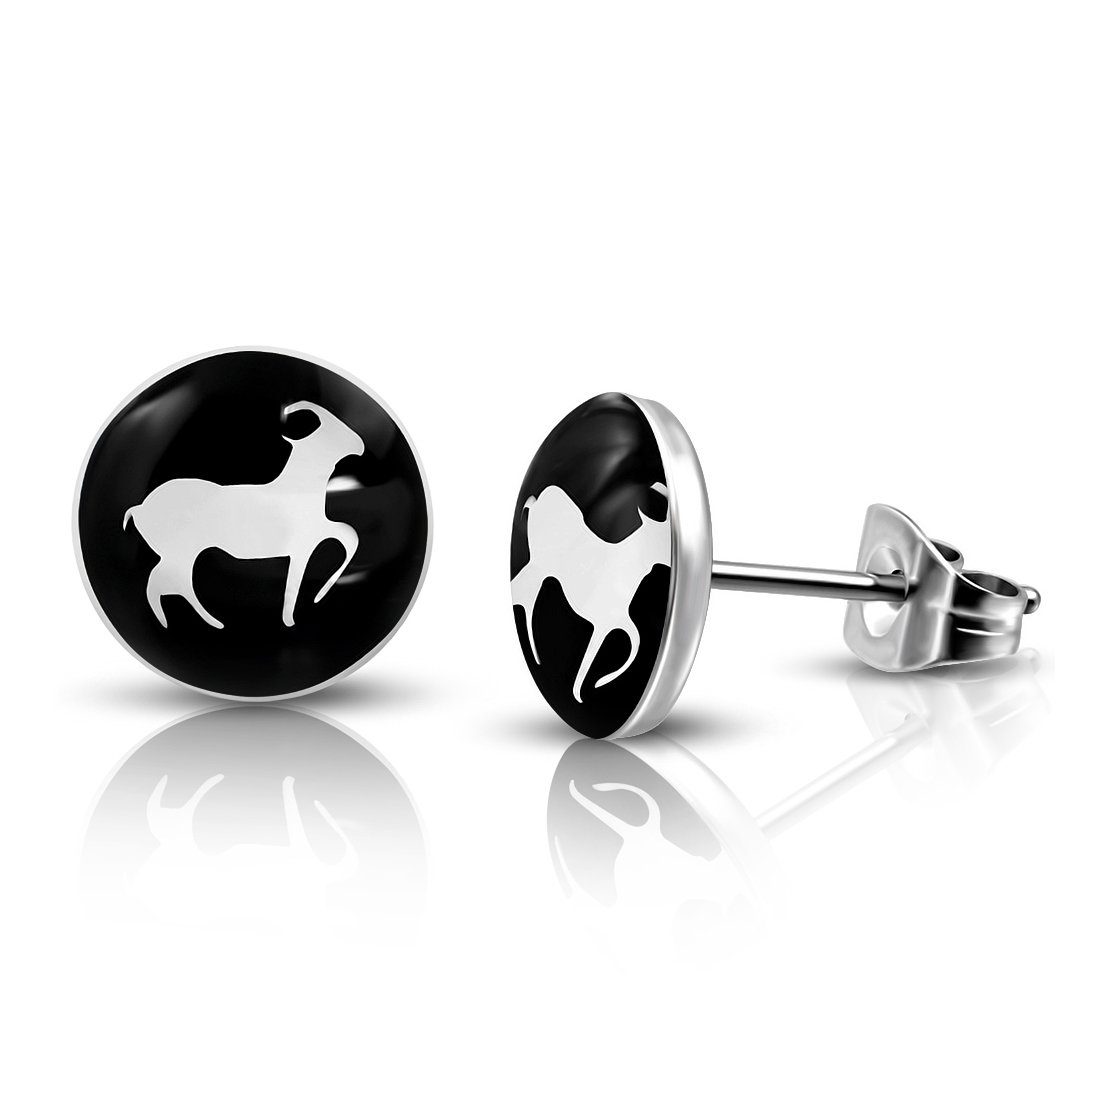 pair Stainless Steel 3 Color Sea-Goat Capricorn Zodiac Sign Circle Stud Earrings